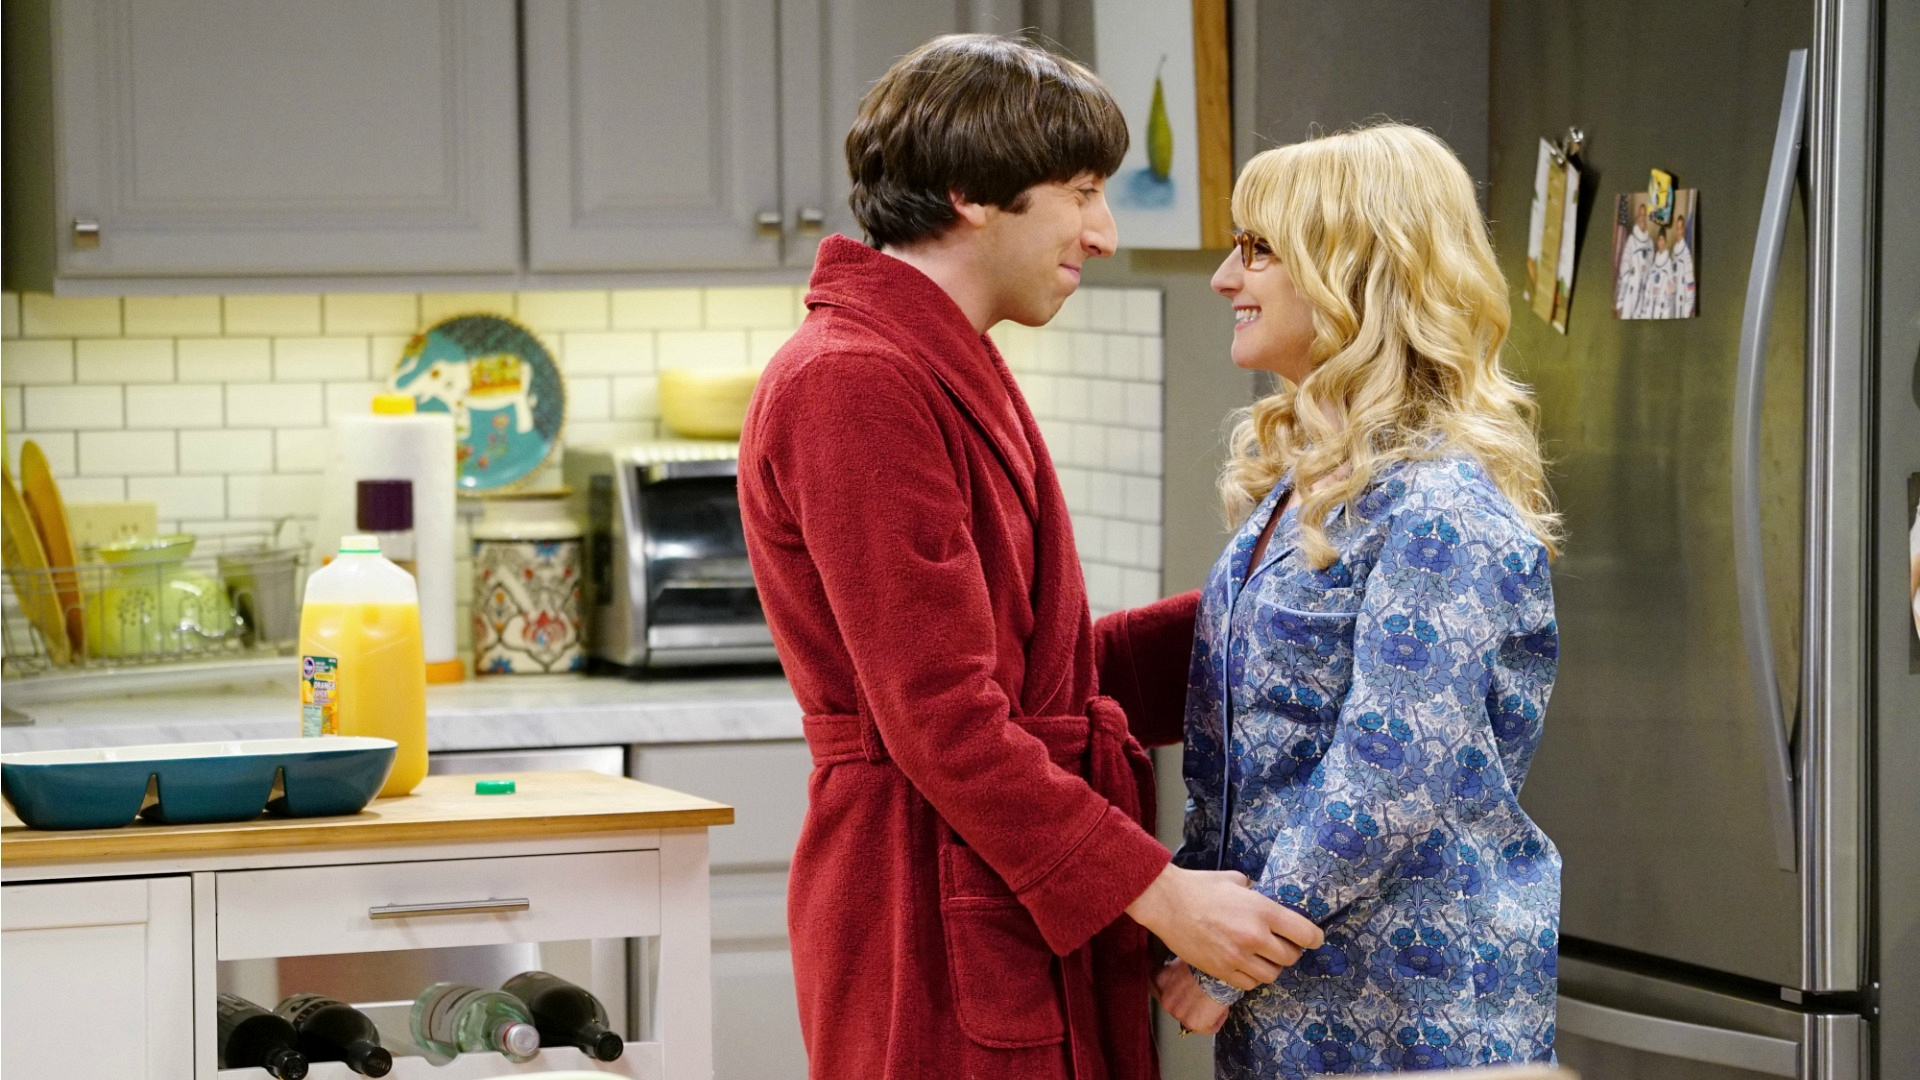 Bernadette revealed her pregnancy on The Big Bang Theory.